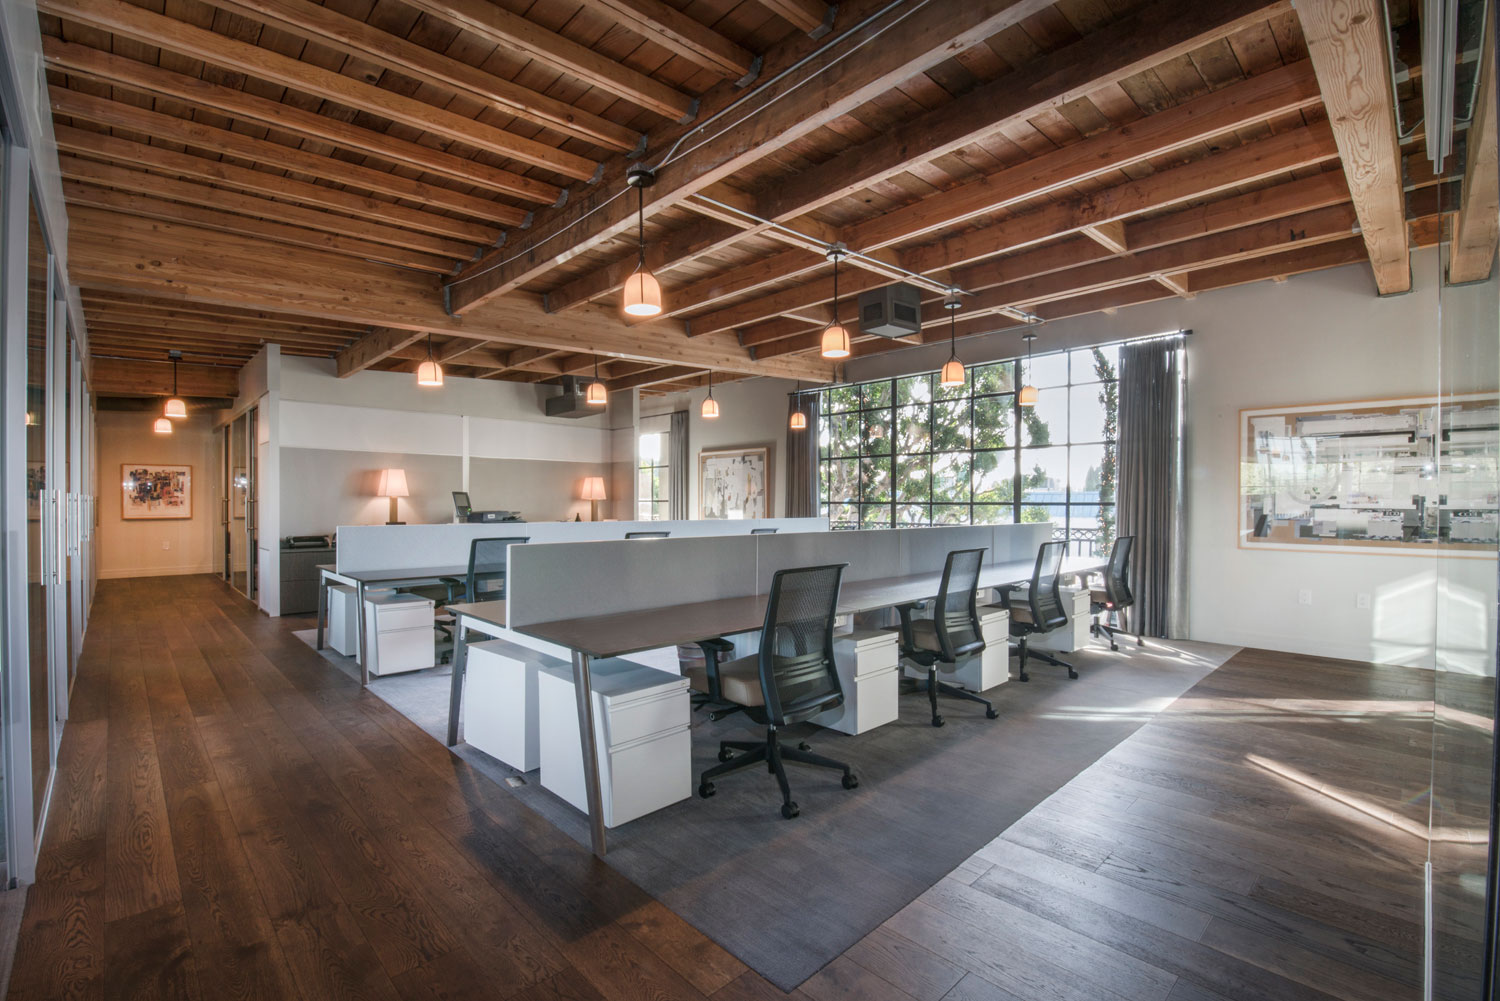 large workspace with beams